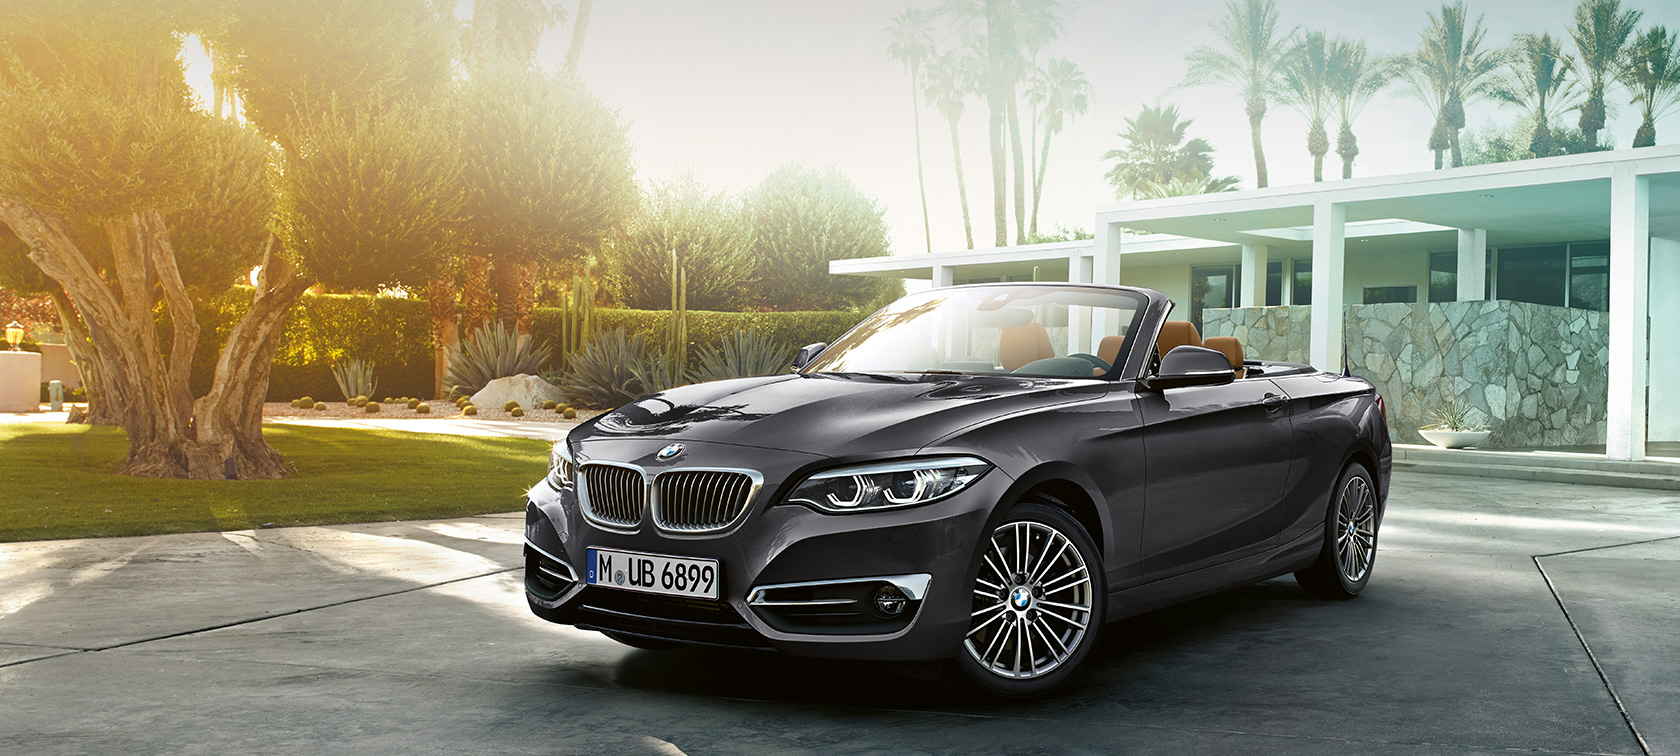 BMW 2 Series Convertible, three-quarter front shot